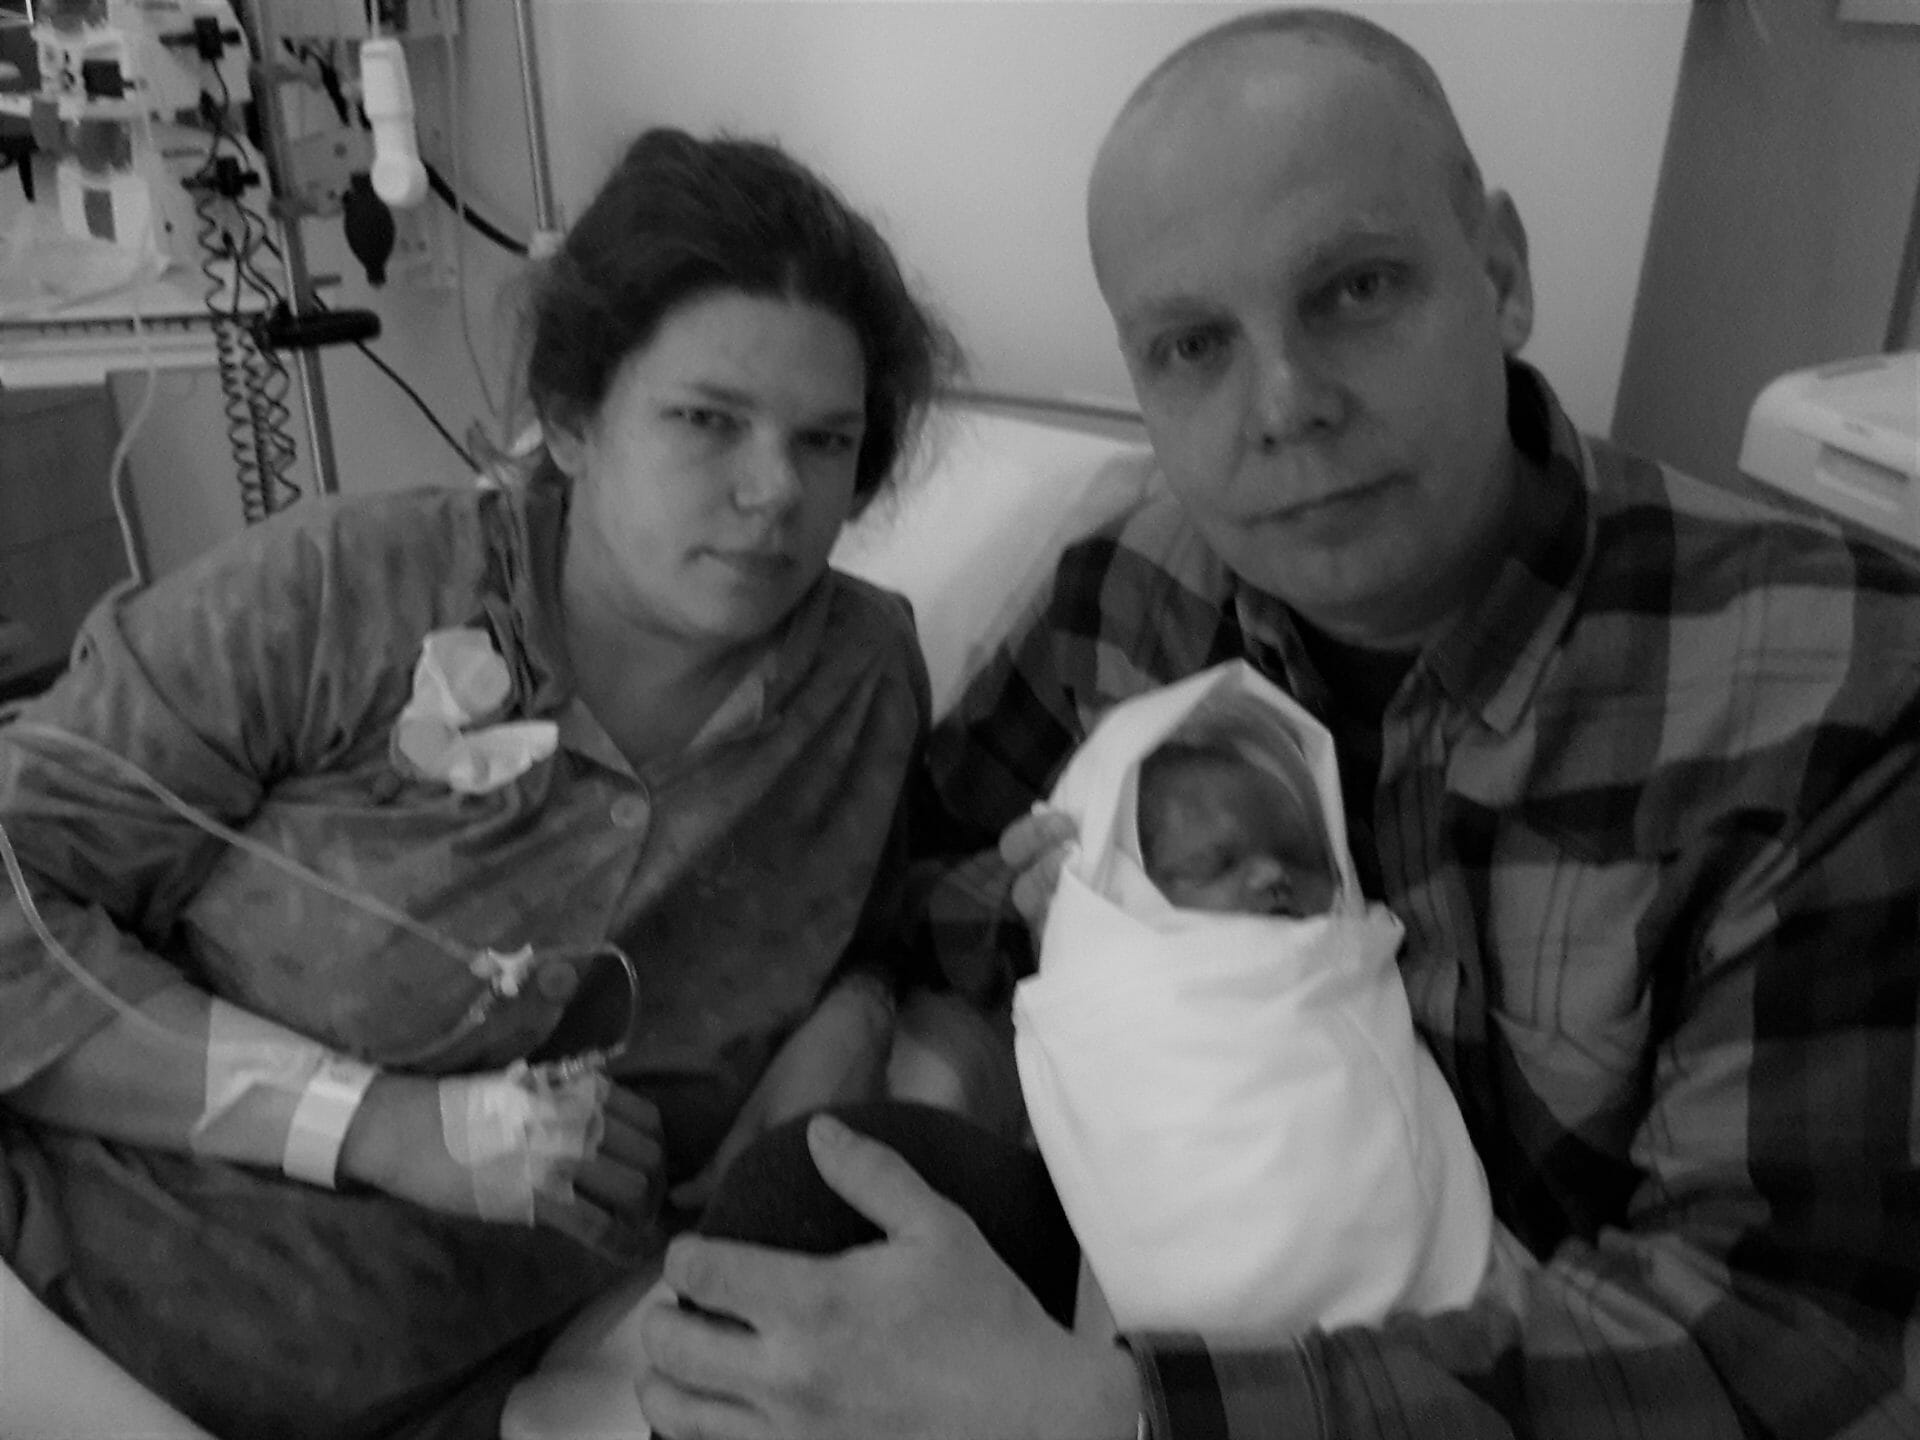 Mother Lotta, Father, and baby Louna in the hospital after birth. Father is holding Louna is his arms, while Lotta sits next to him on the hospital bed. (photo contributed by Lotta)